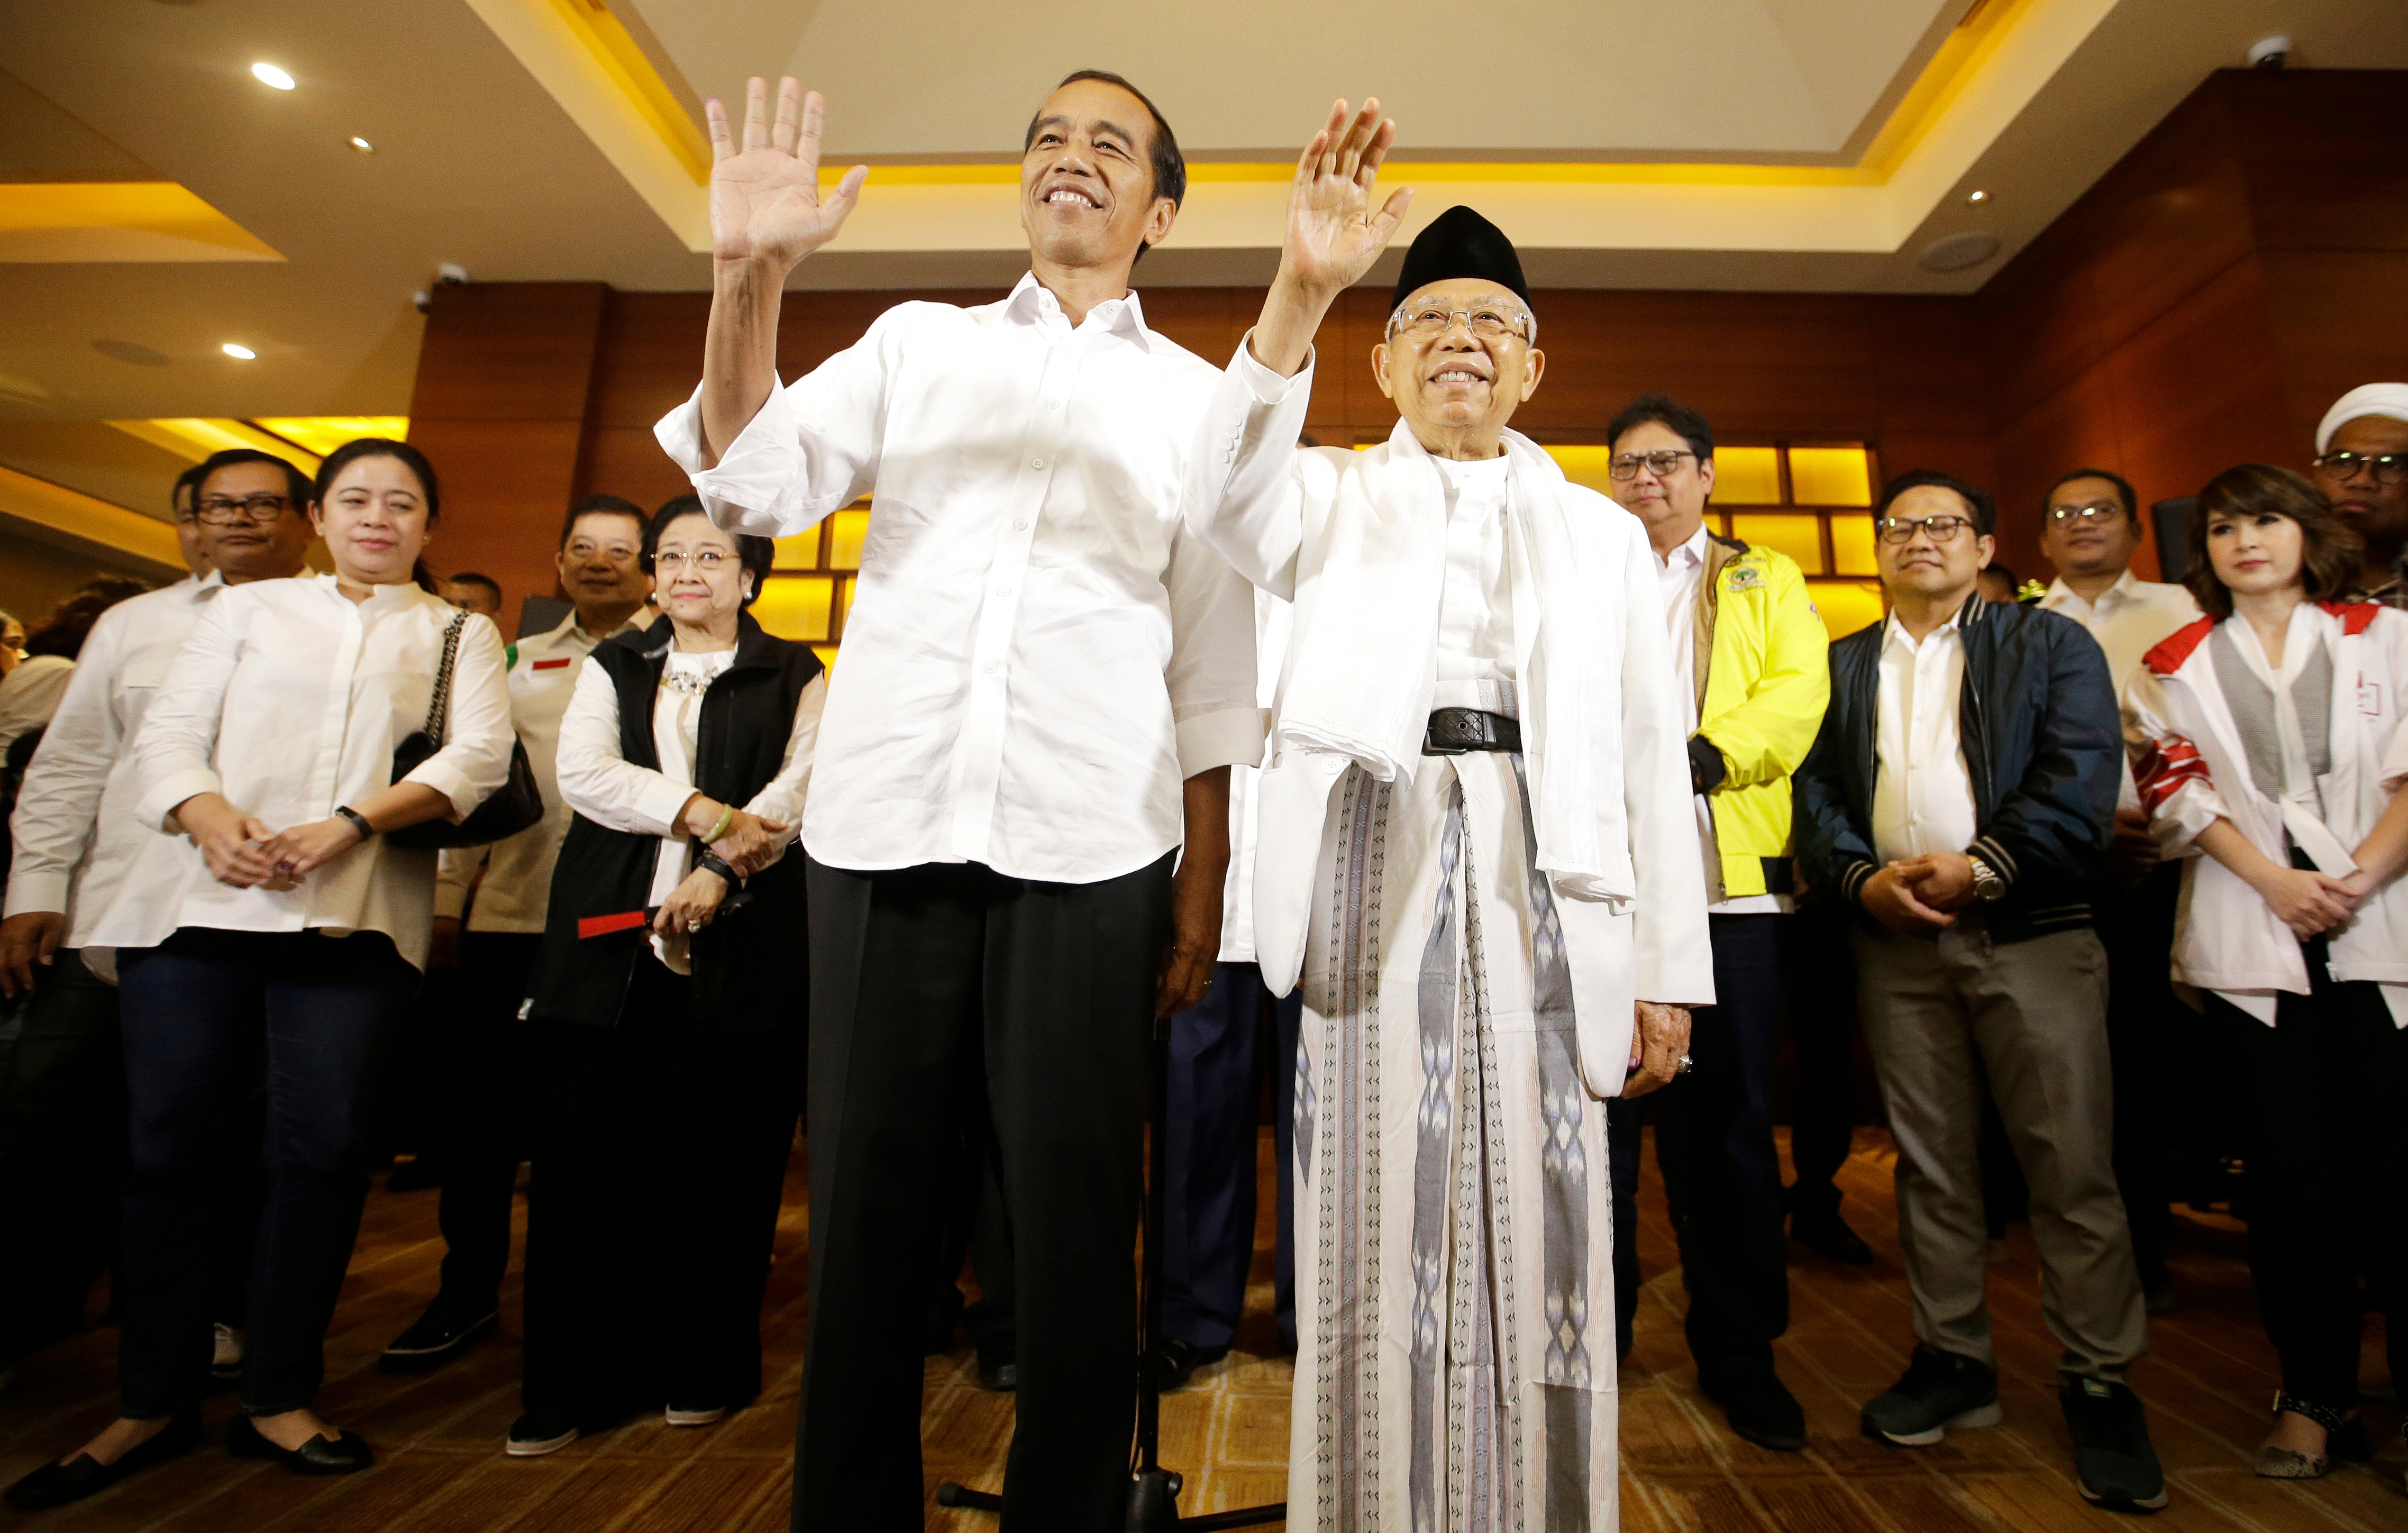 Indonesian President Joko Widodo and his running mate Ma'ruf Amin, right, wave to journalist  after a press conference in Jakarta, Indonesia.